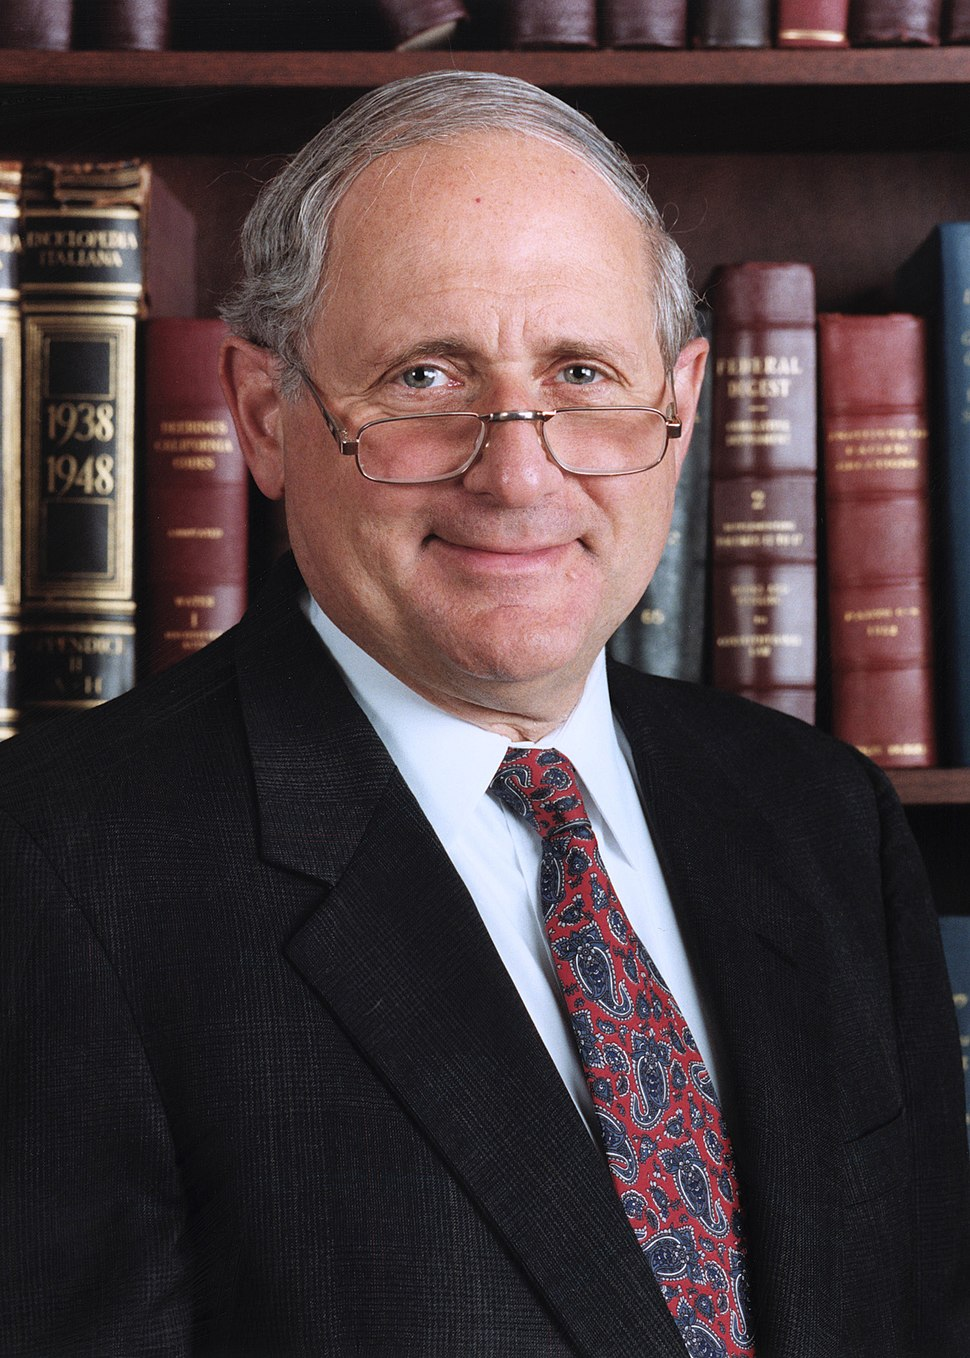 Carl Levin official portrait